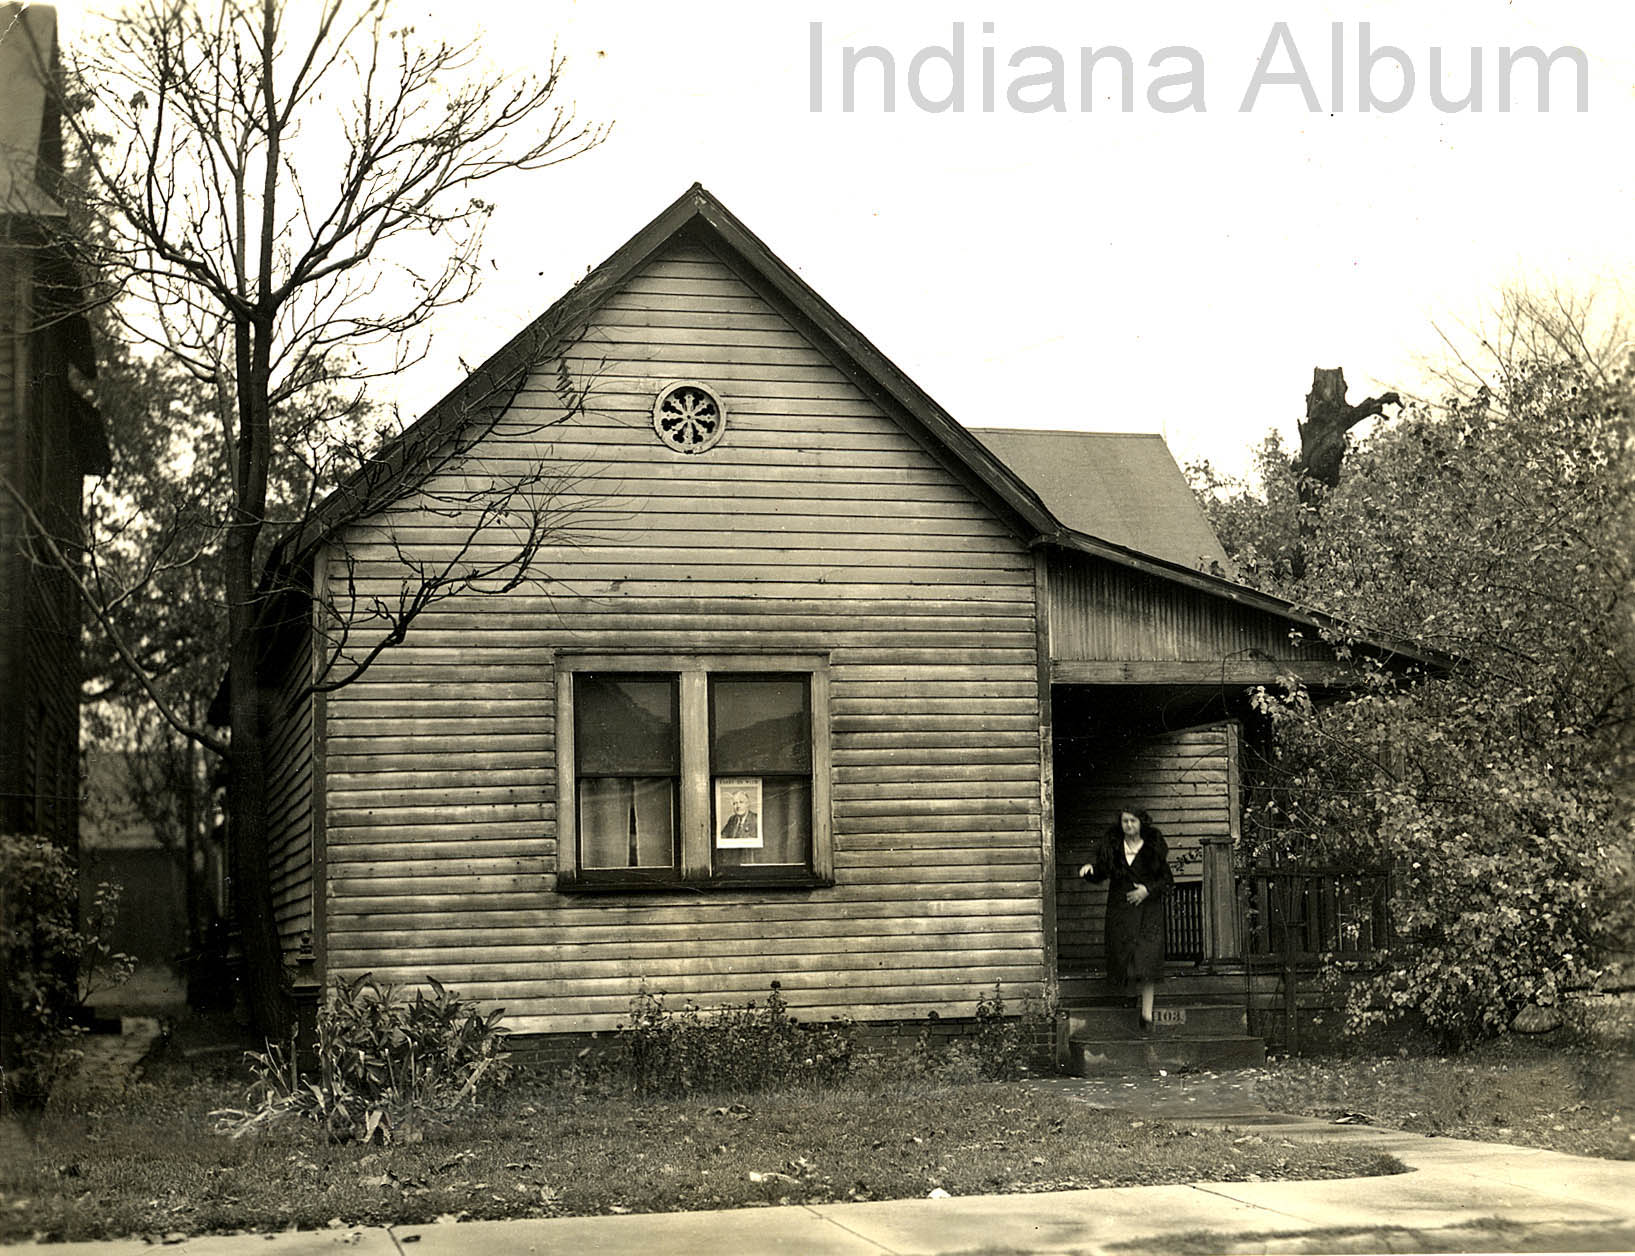 Indianapolis Then and Now: The Ryan/Gasaway Home, 1103 E. 9th Street